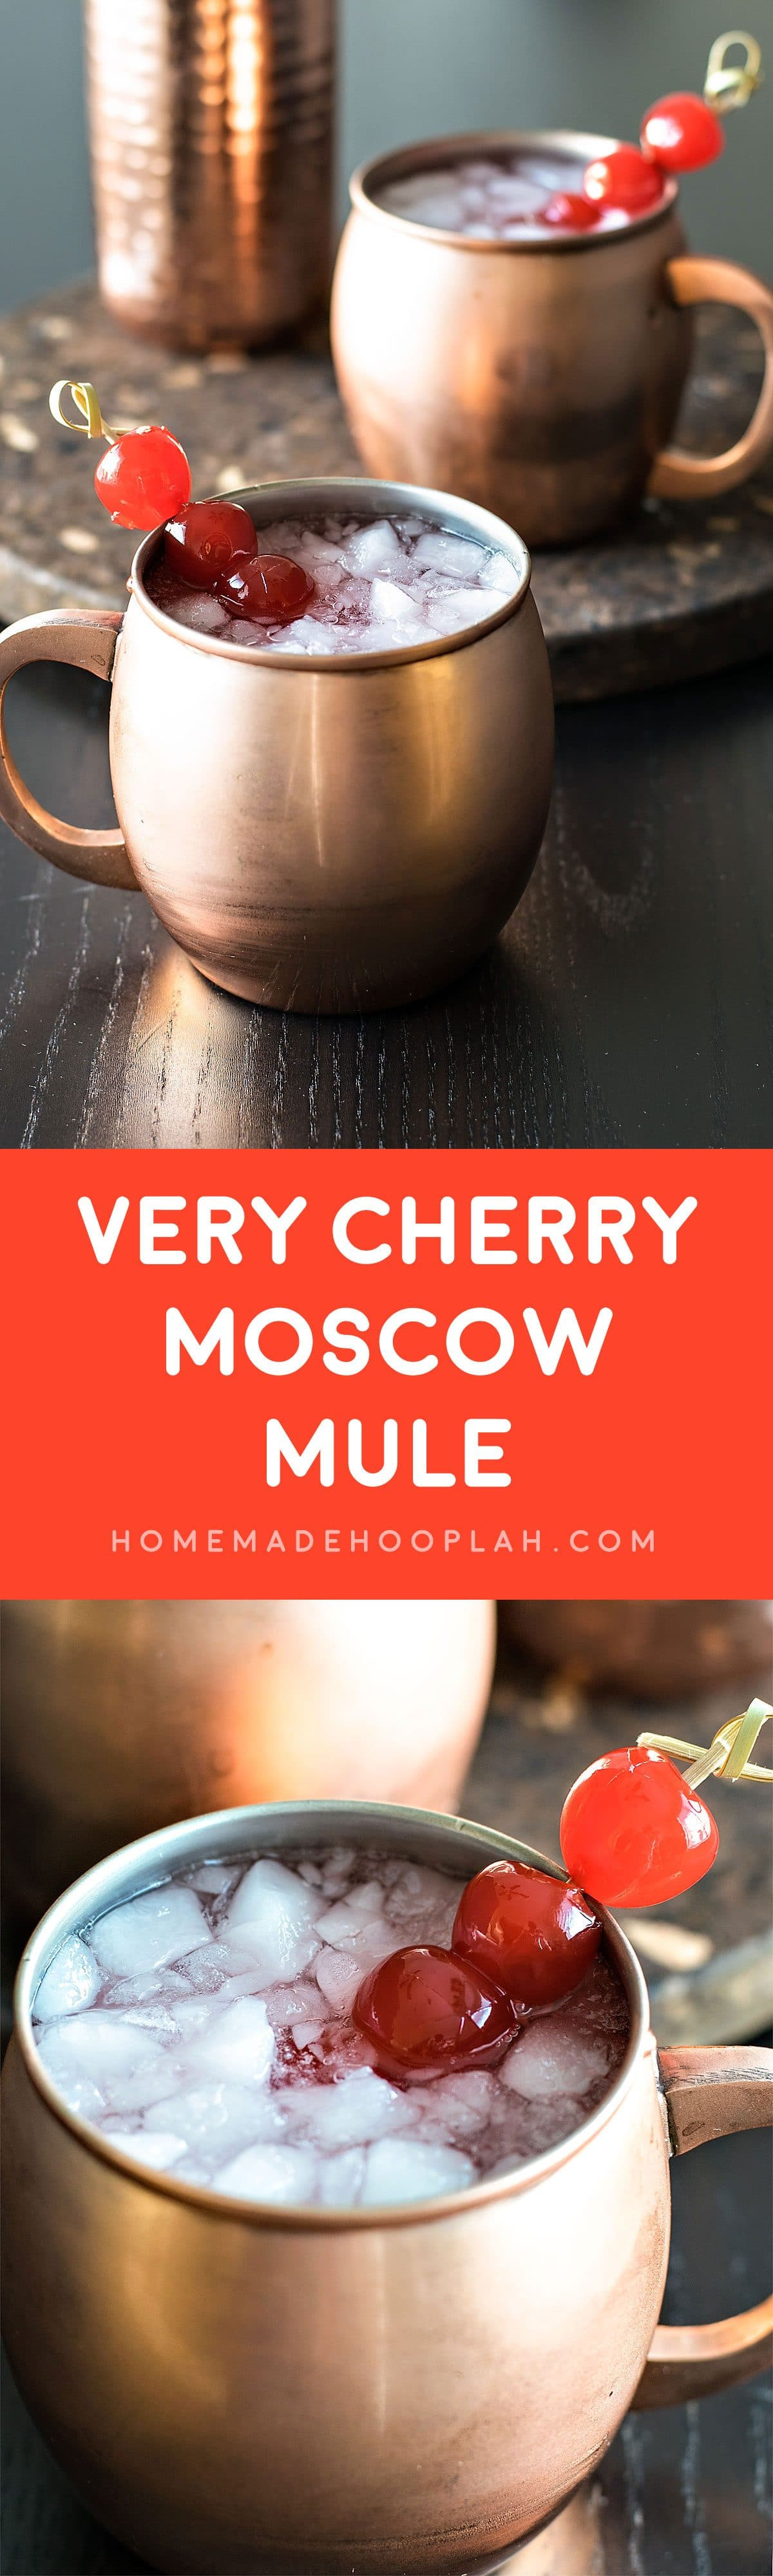 Very Cherry Moscow Mule! A fruity twist on a classic (and popular!) drink, this cherry moscow mule is made with cherry vodka and garnished with maraschino cherries.   HomemadeHooplah.com